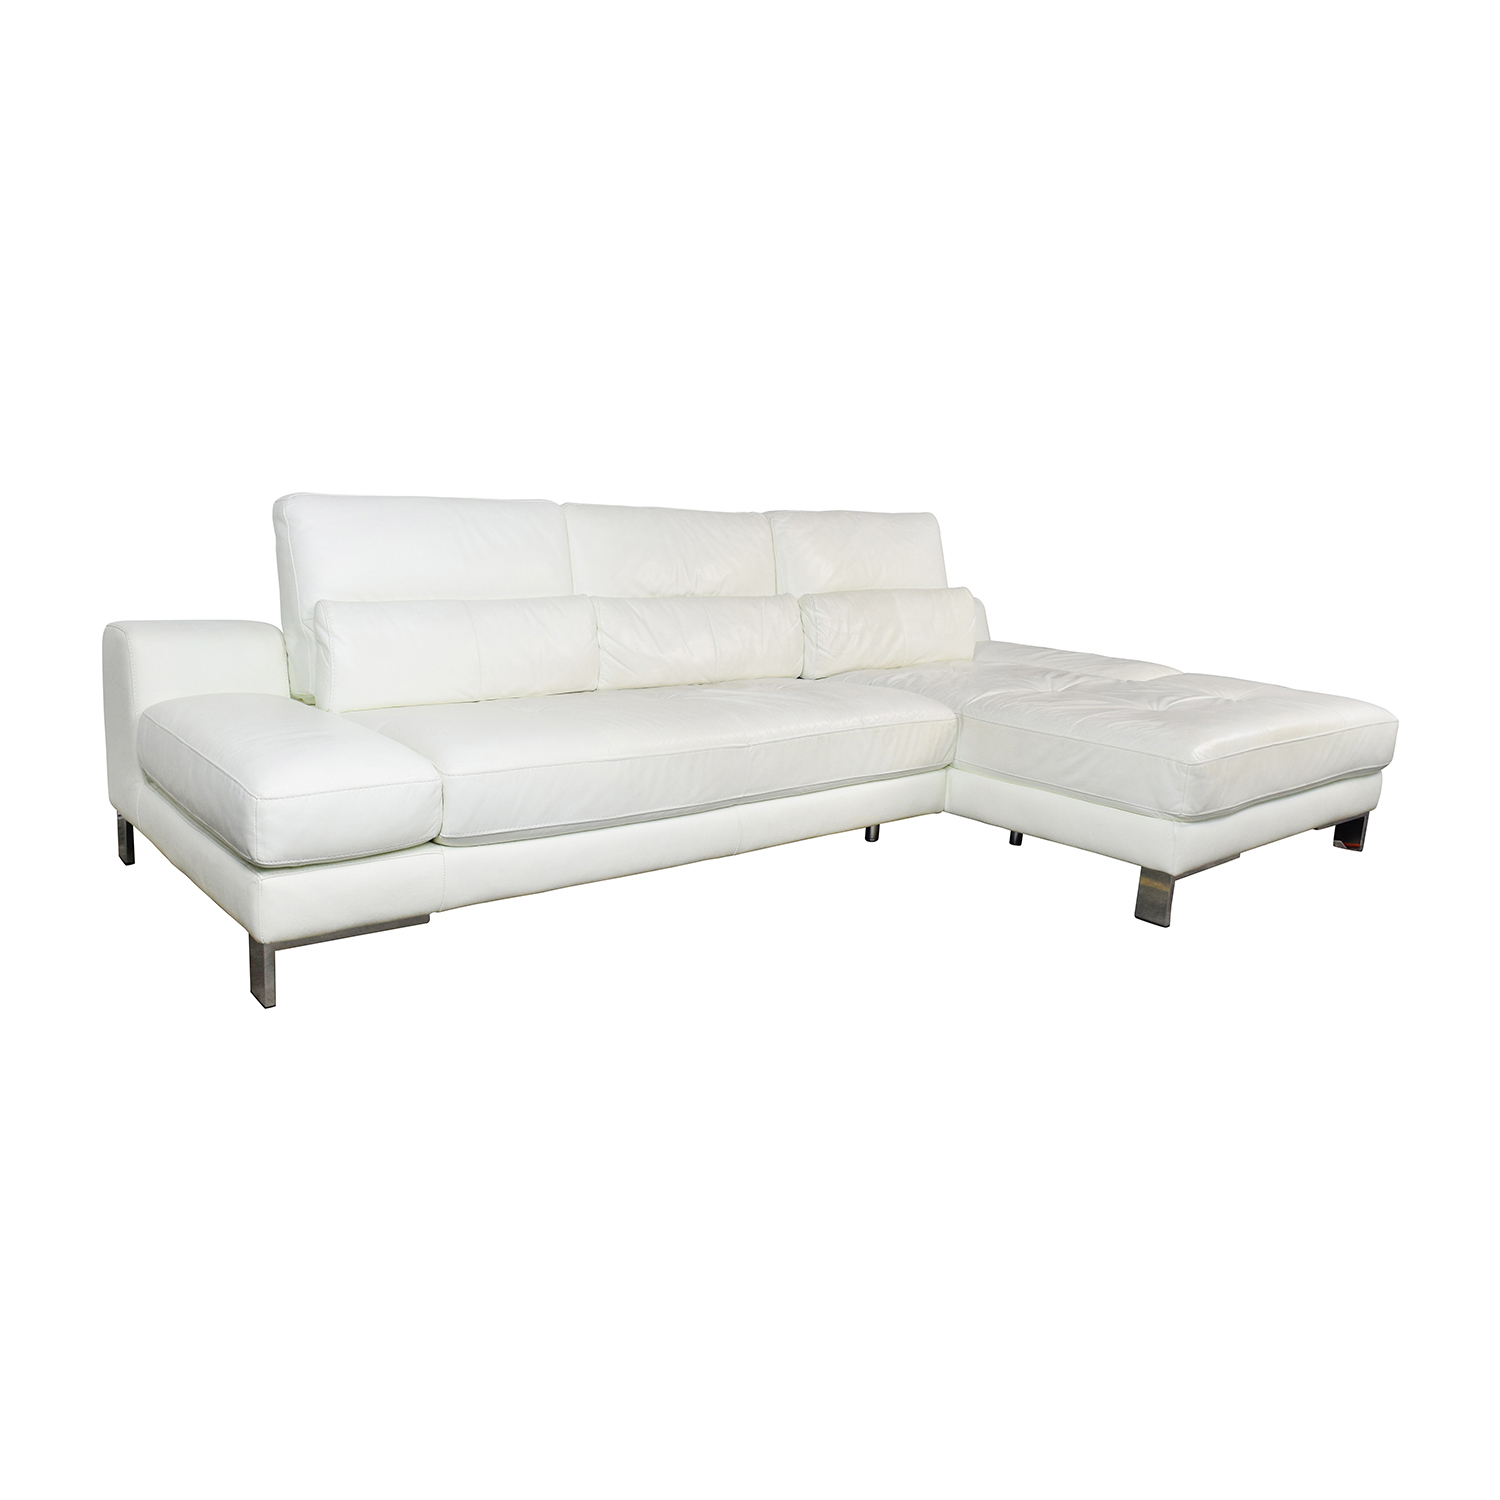 Stupendous 72 Off Mobilia Mobilia Canada Funktion White Leather Sectional Sofas Machost Co Dining Chair Design Ideas Machostcouk